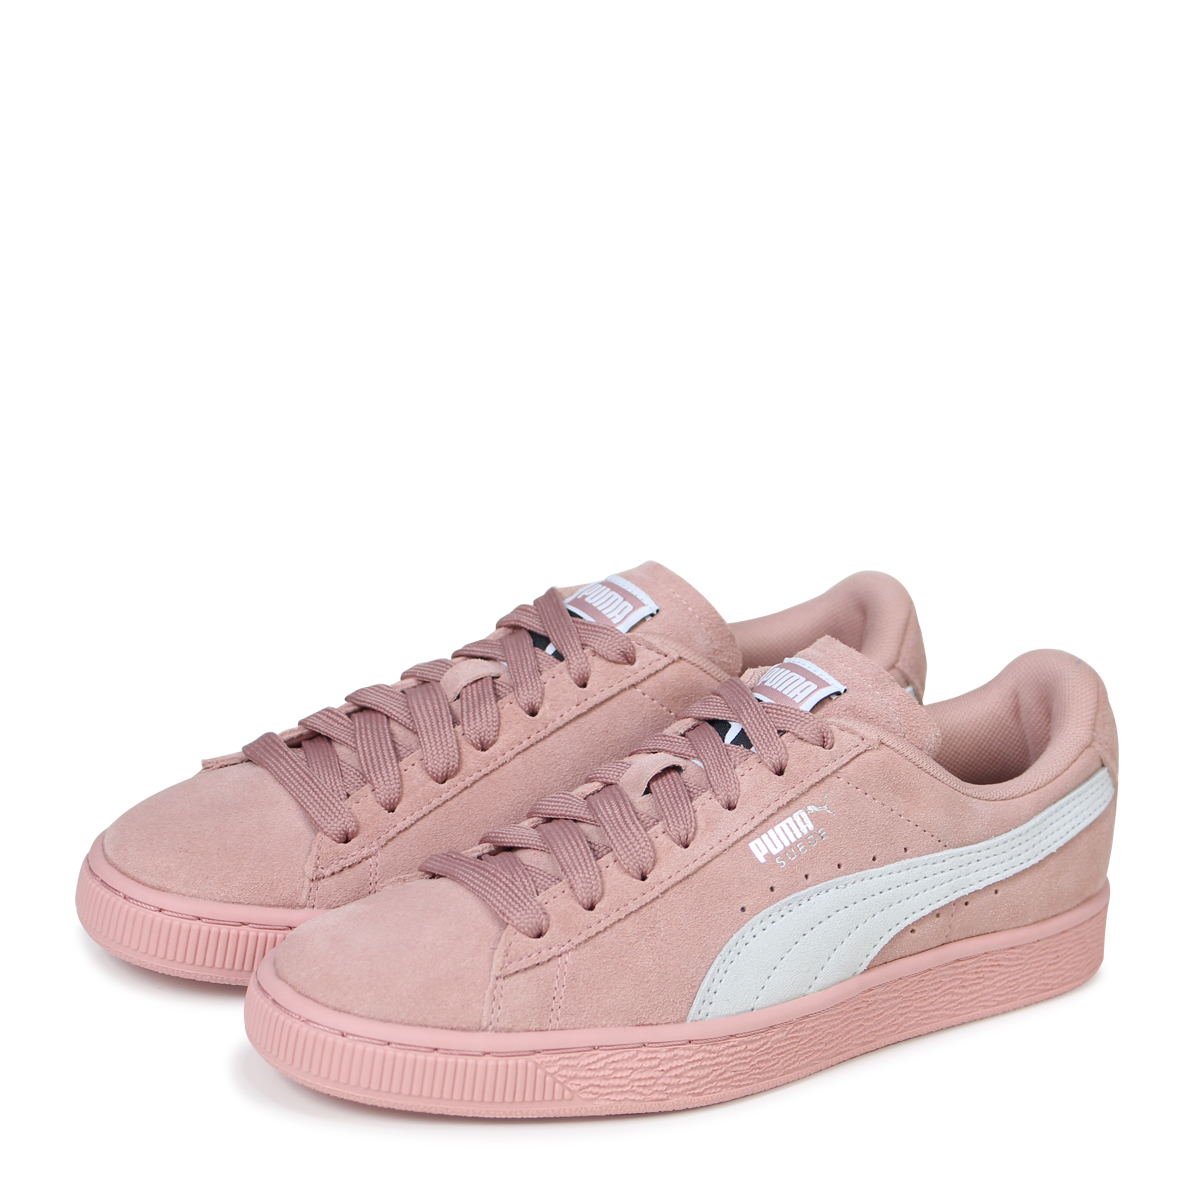 huge selection of c20f2 43045 PUMA WMNS SUEDE CLASSIC Puma suede classical music sneakers Lady's  355,462-67 pink [load planned Shinnyu load in reservation product 4/18  containing] ...